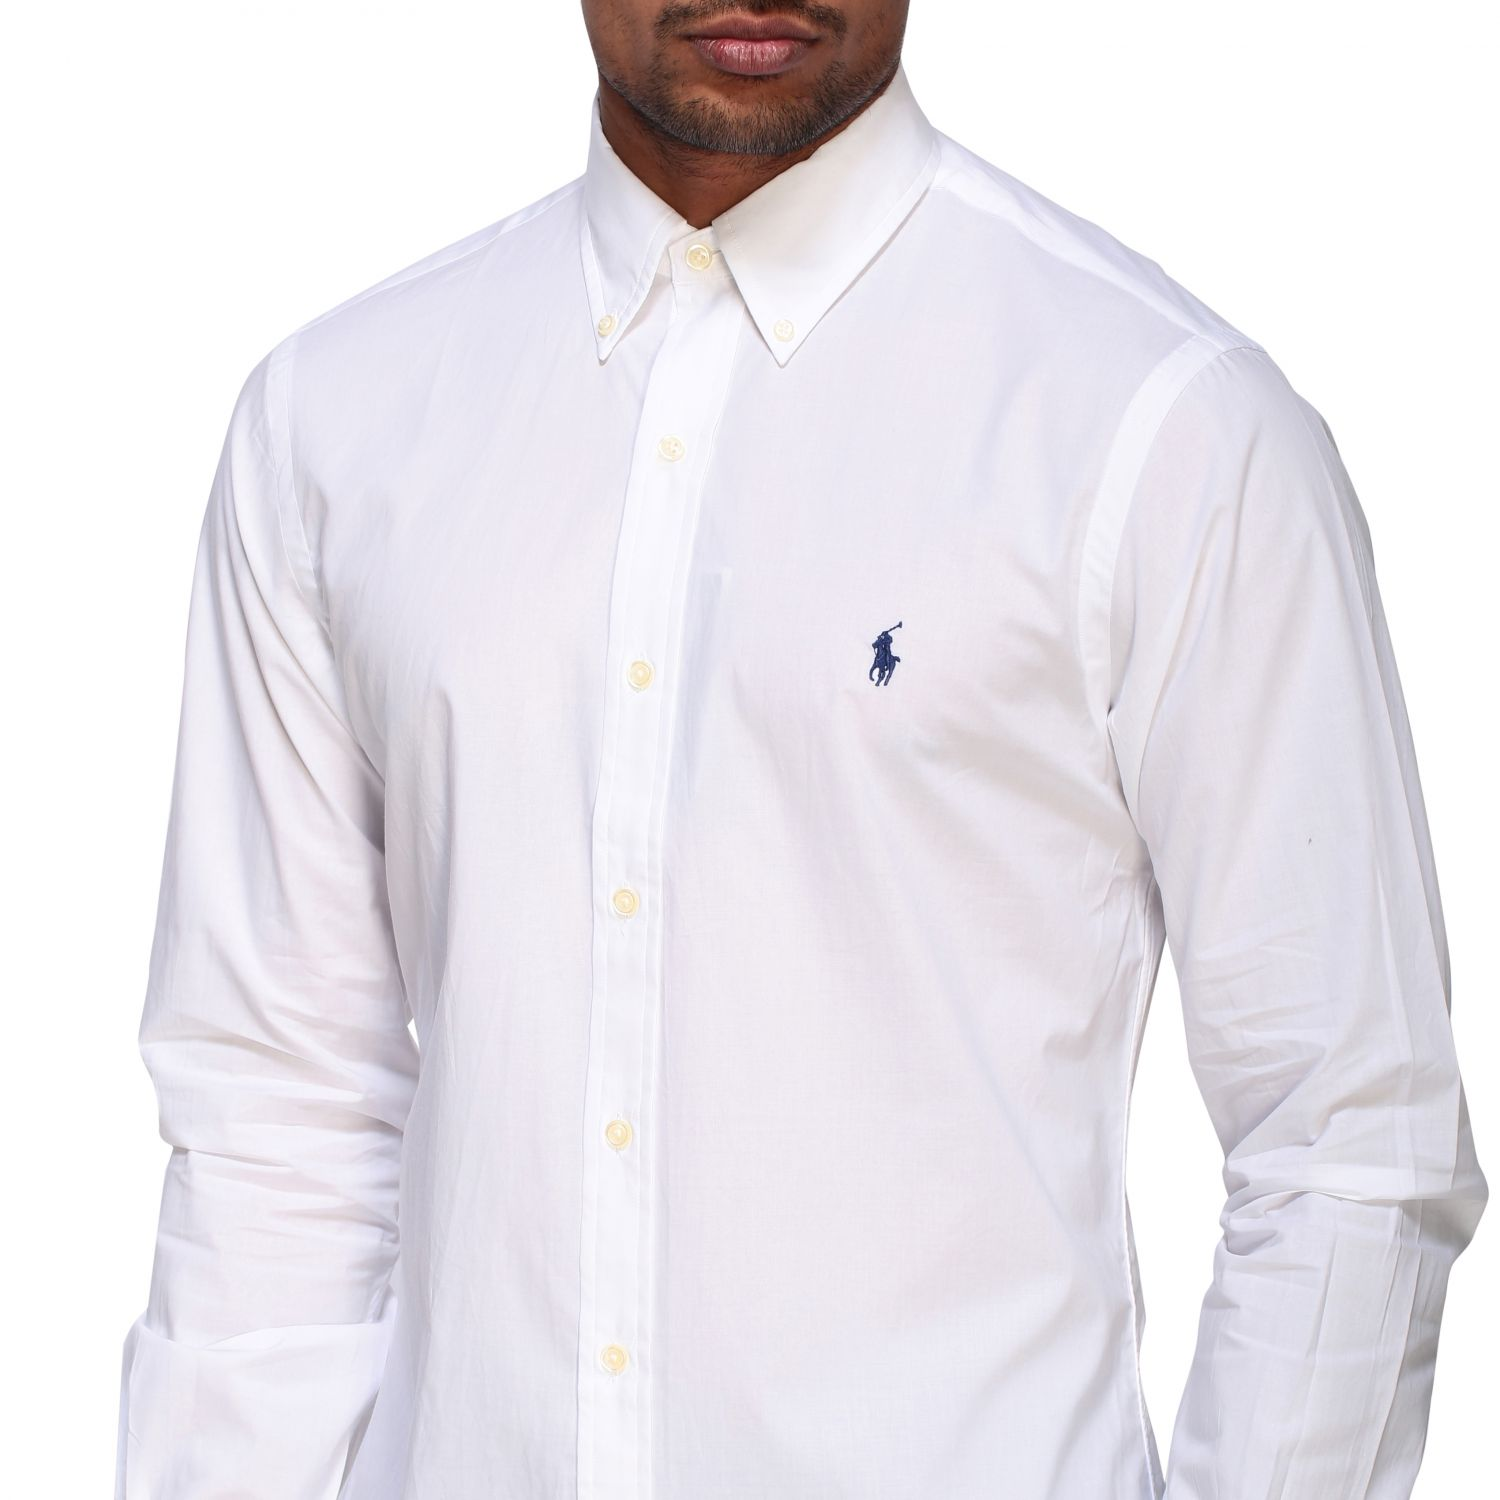 Camicia Polo Ralph Lauren in popeline con collo button down bianco 5